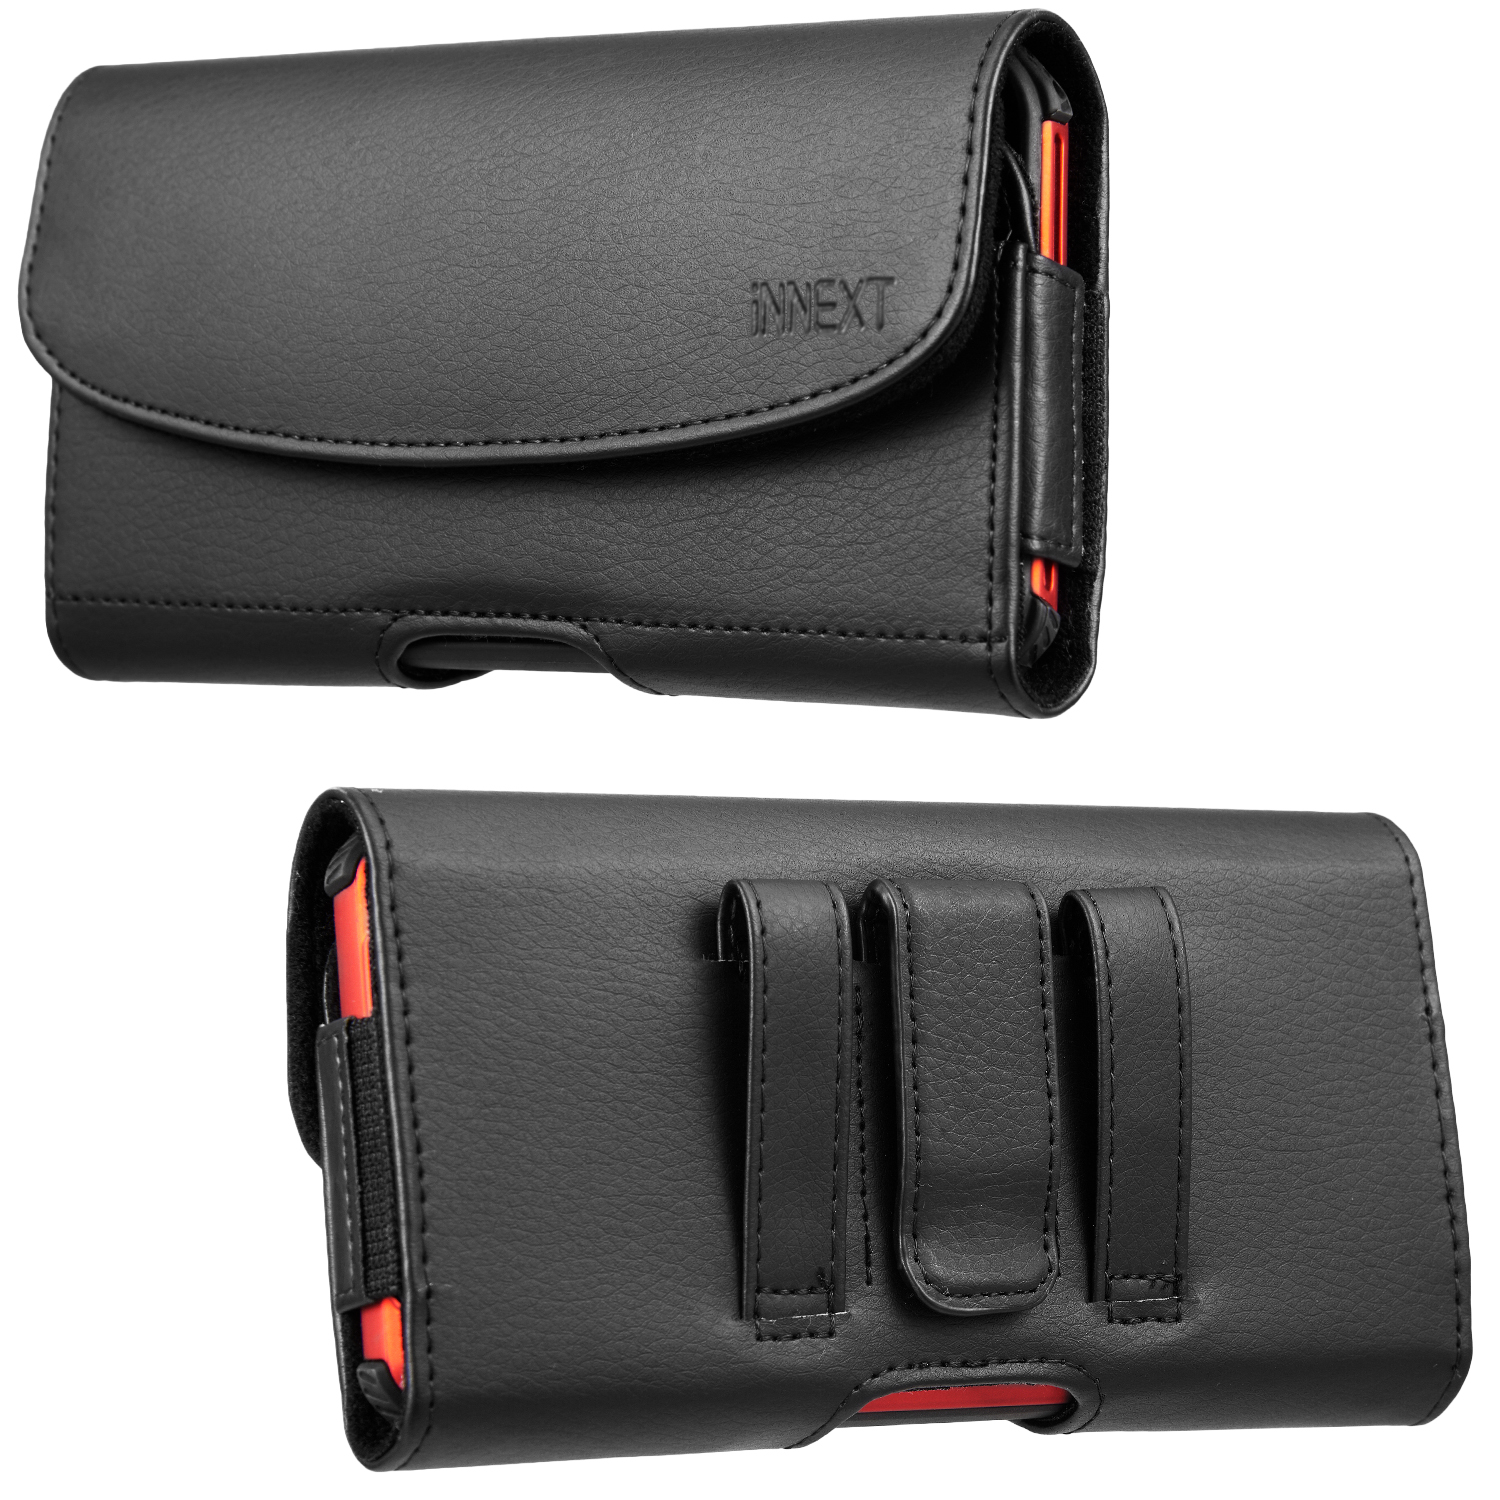 Universal phone Case Pouch for <font><b>iPhone</b></font> <font><b>XS</b></font> Max 6 7 8 plus for Samsung S9+ <font><b>Belt</b></font> Clip Smartphone Bag Holster Nylon Leather Cover image